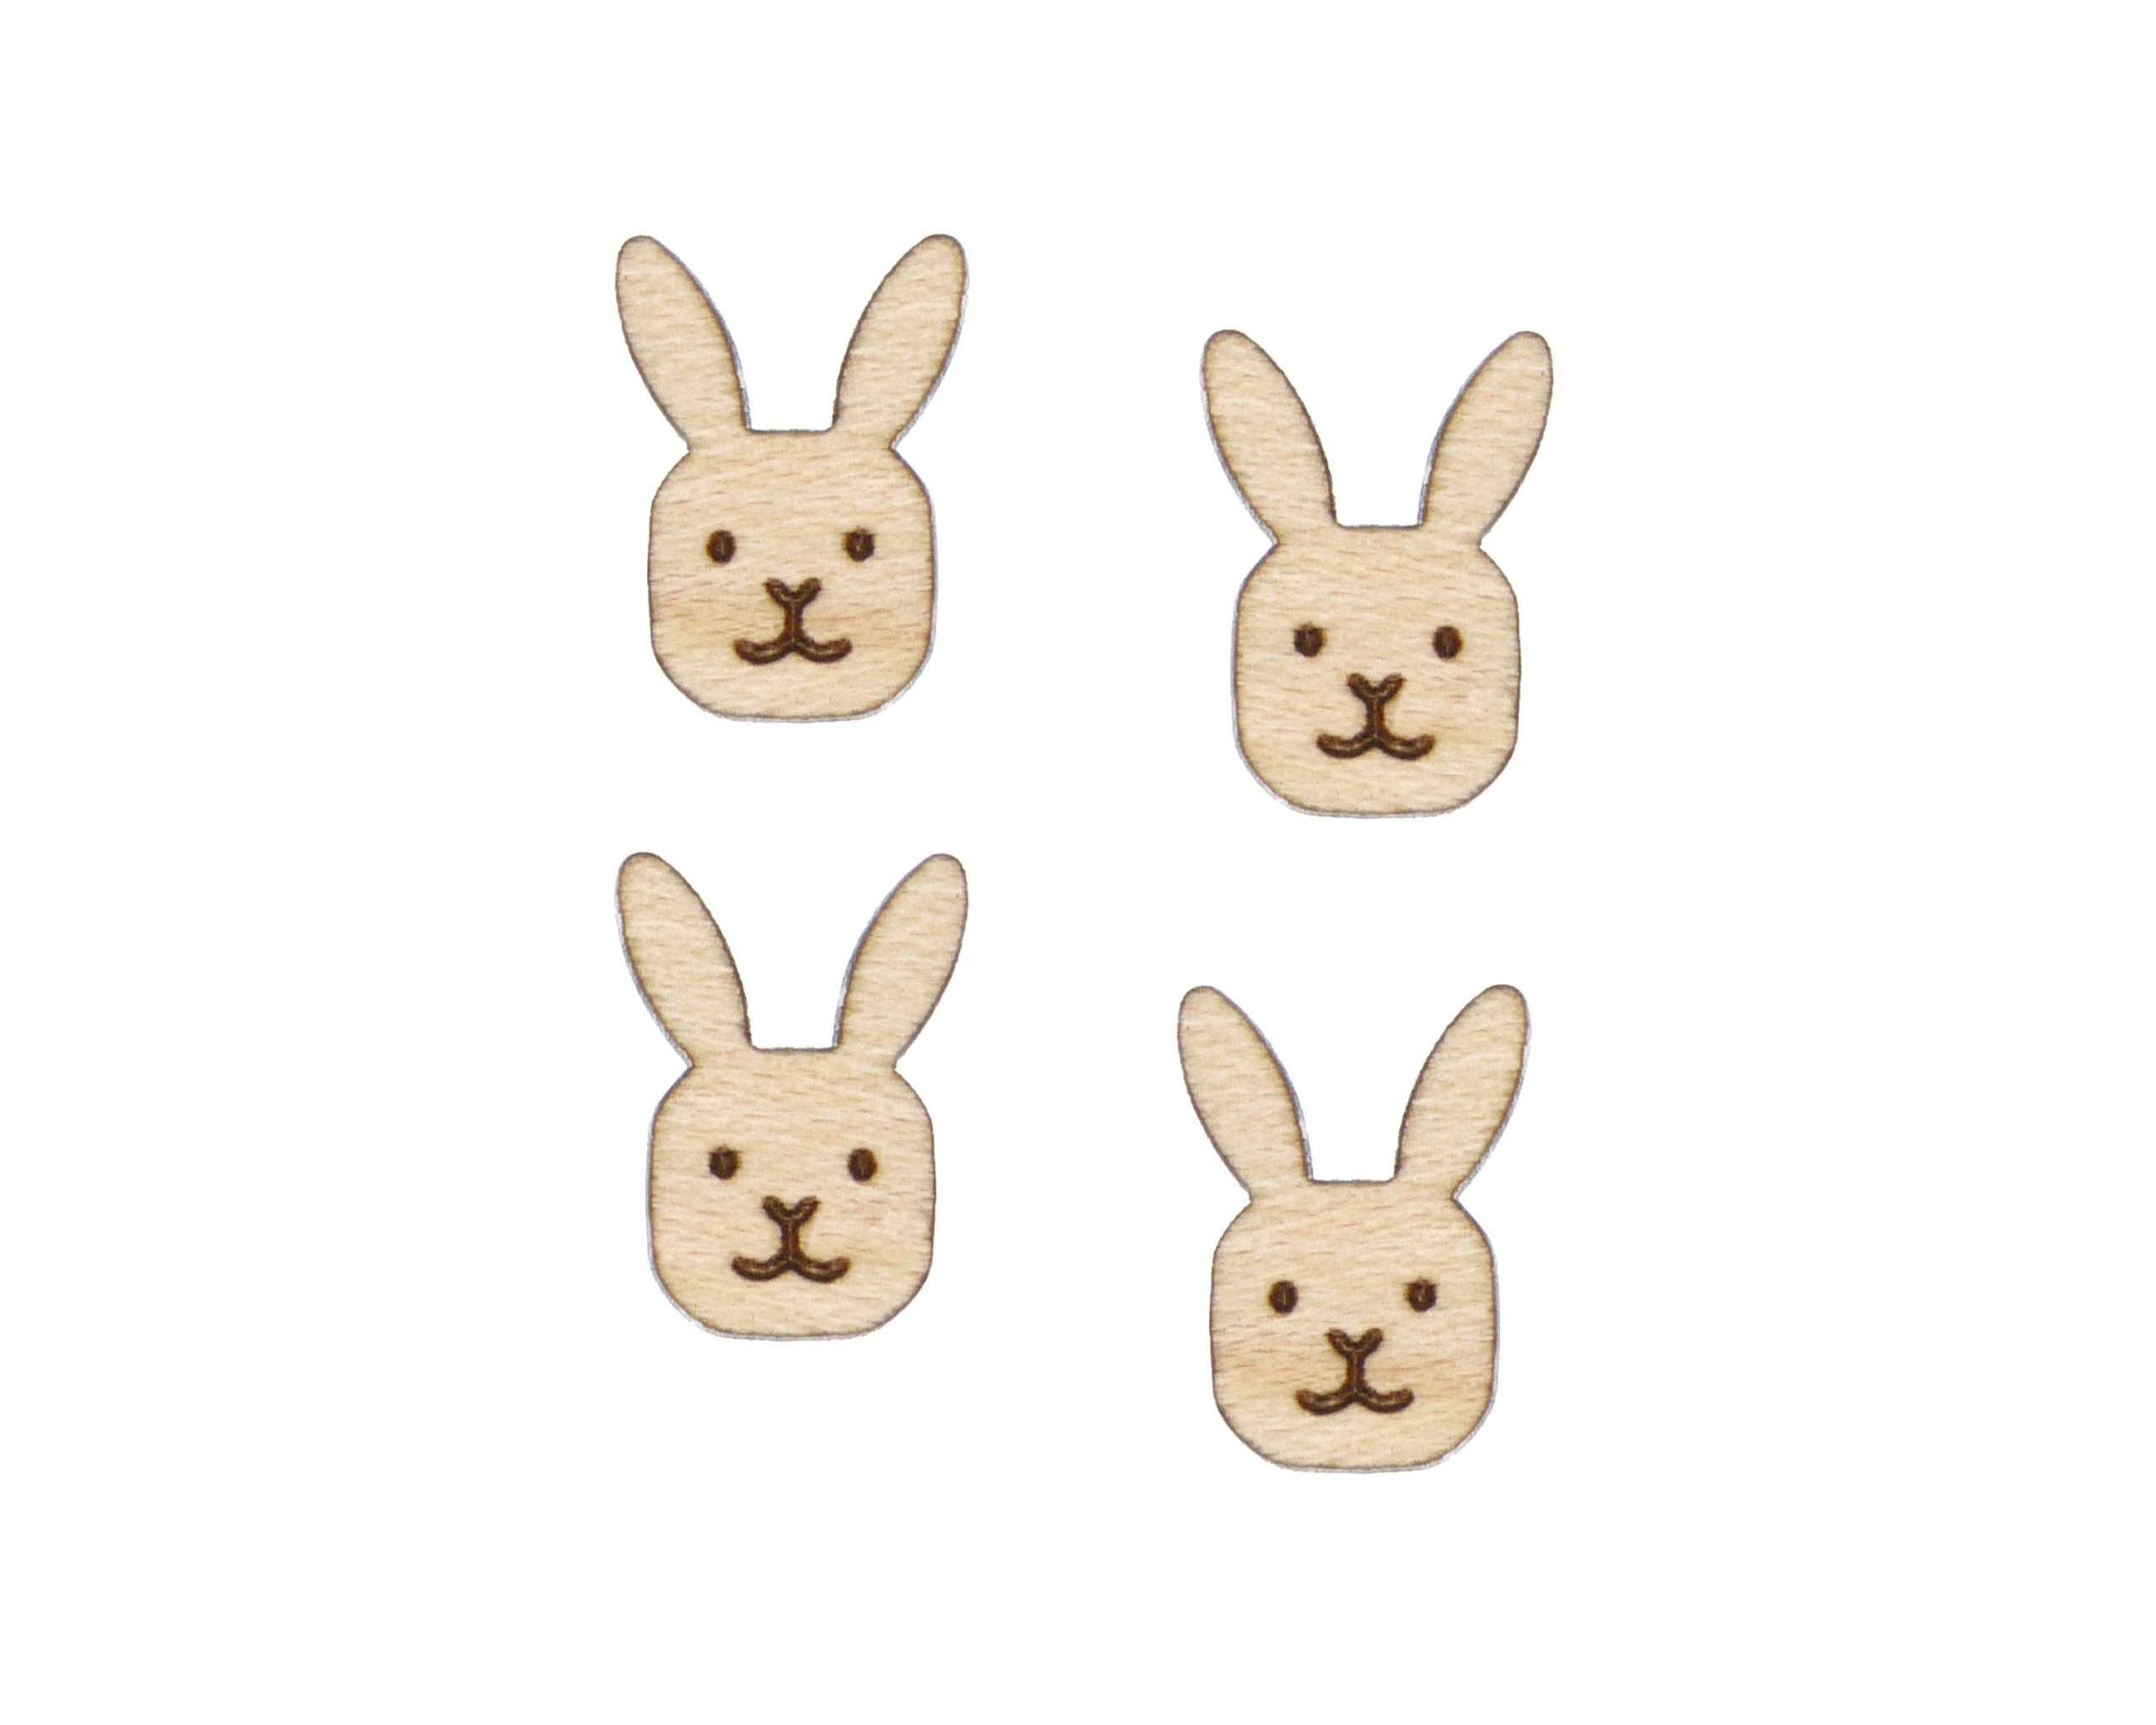 Bunny Face Engraved Wood Cabochons